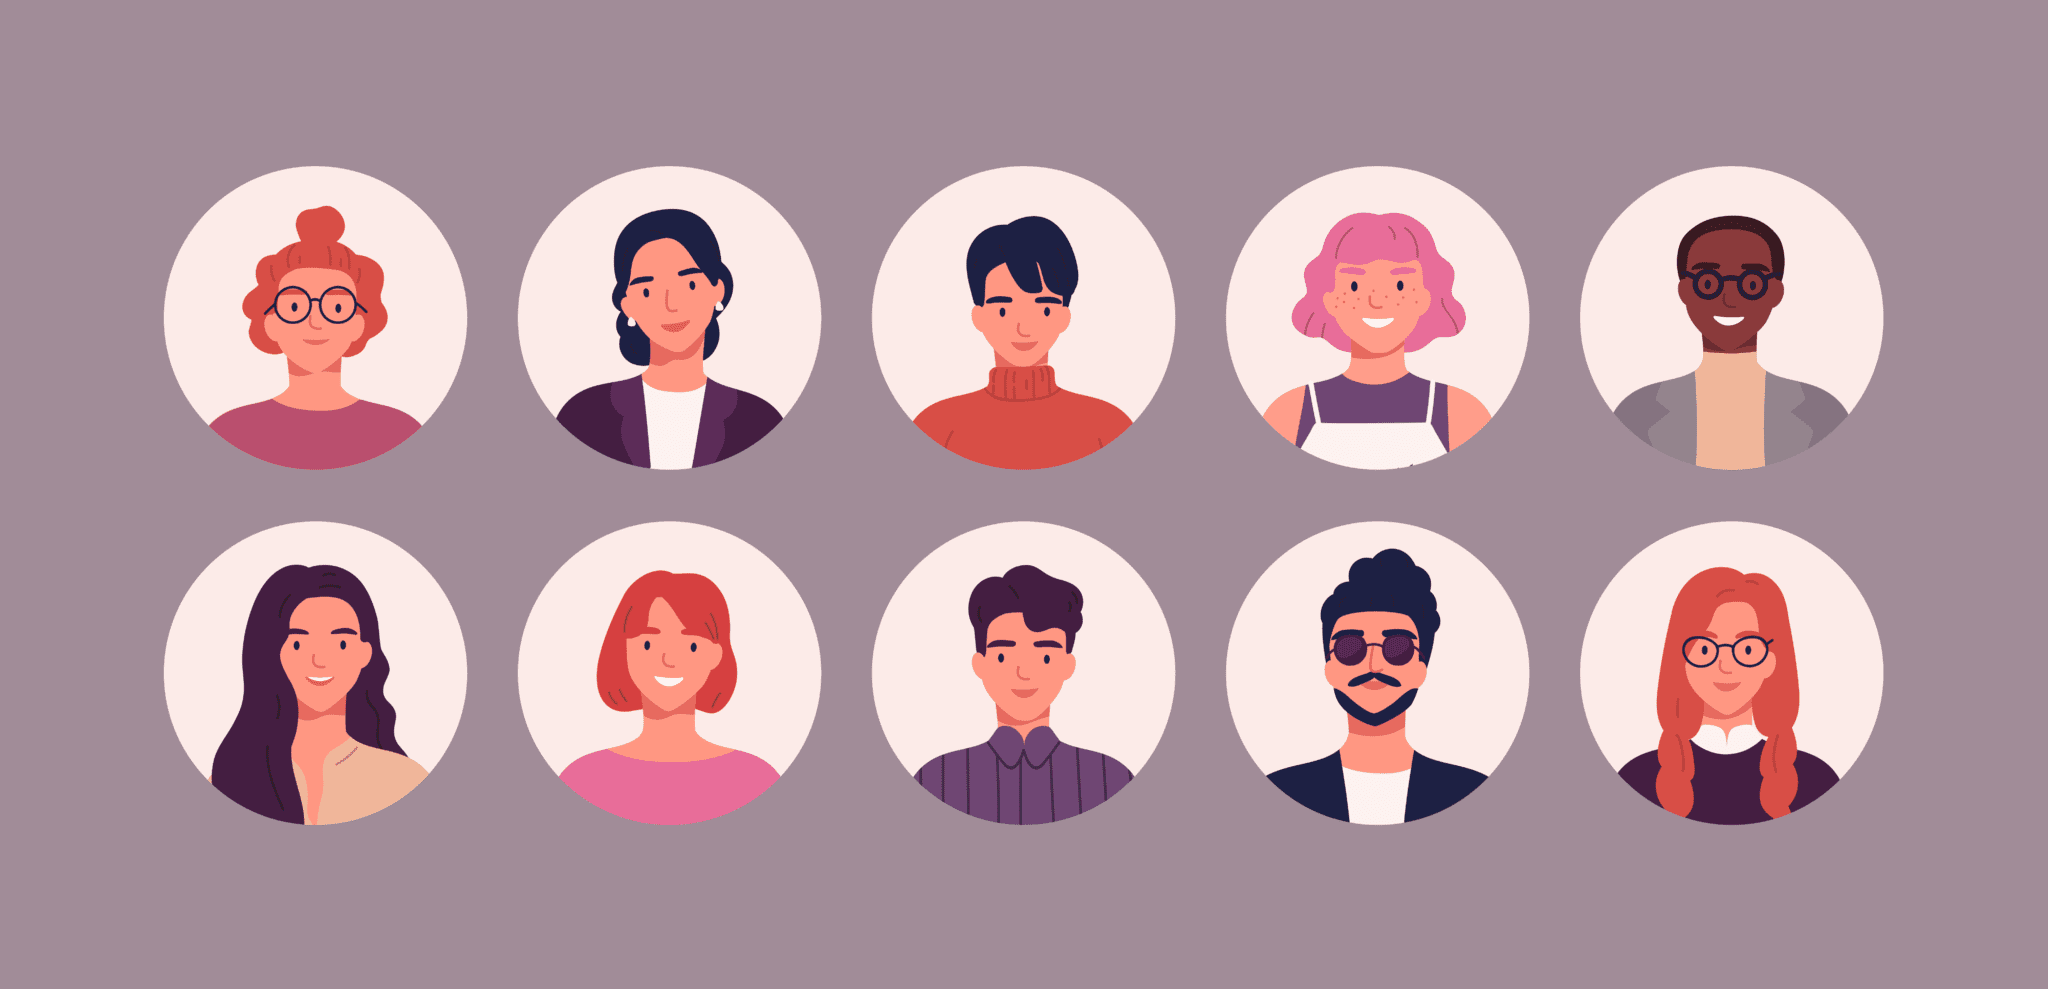 Illustration of a diverse group of people